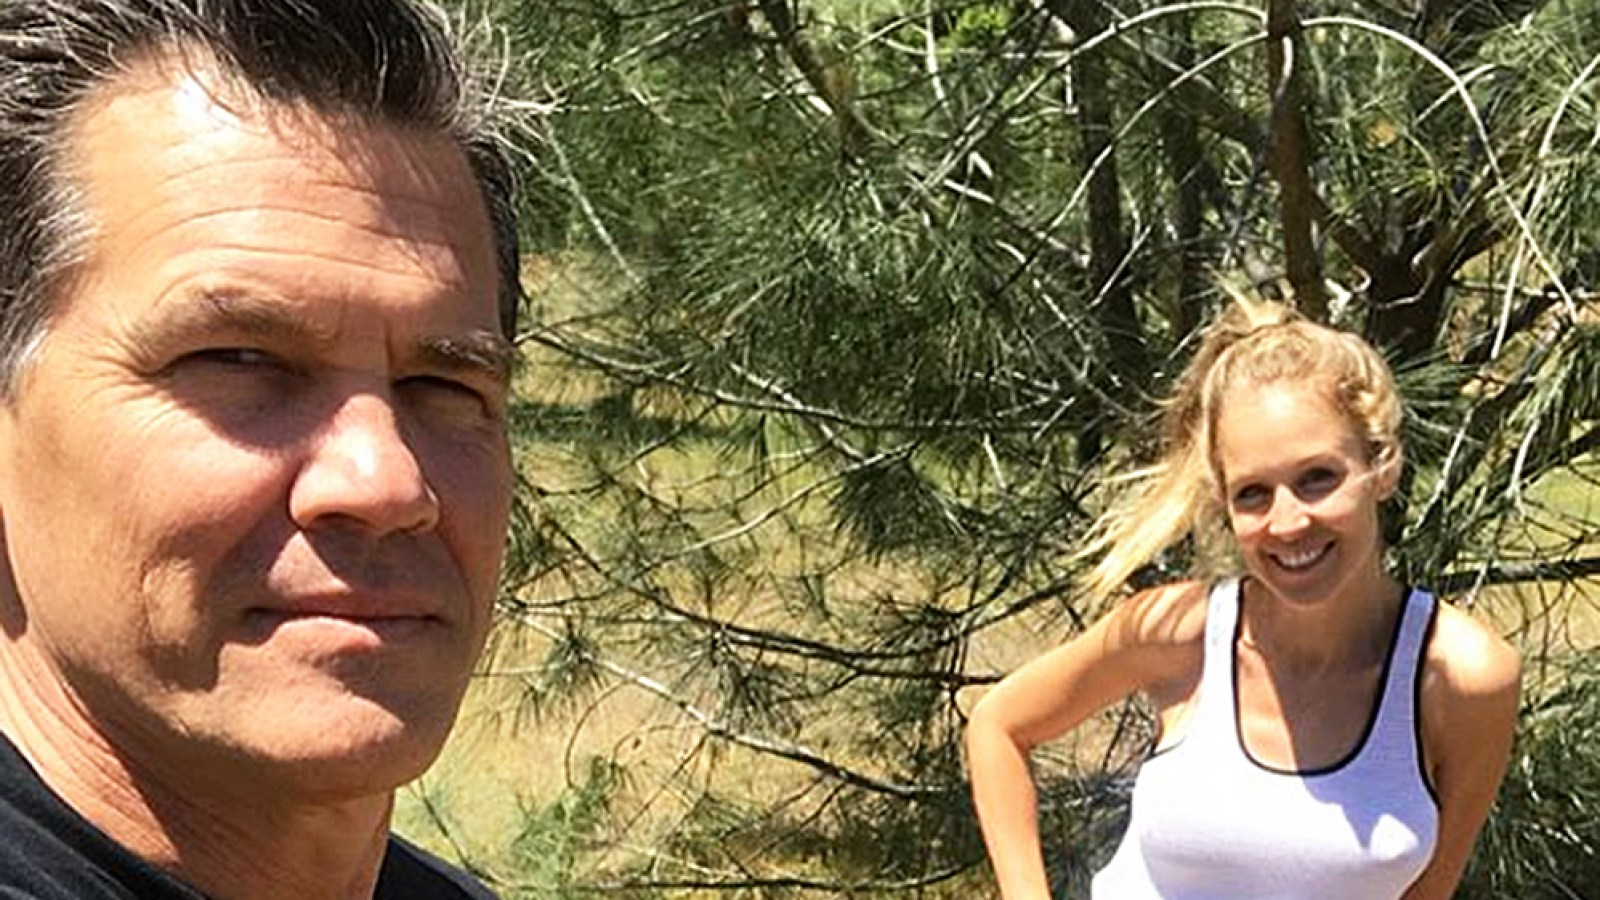 f5312fa3052cb Josh Brolin's Wife Kathryn Boyd Is Pregnant, Expecting Their First Child  Together